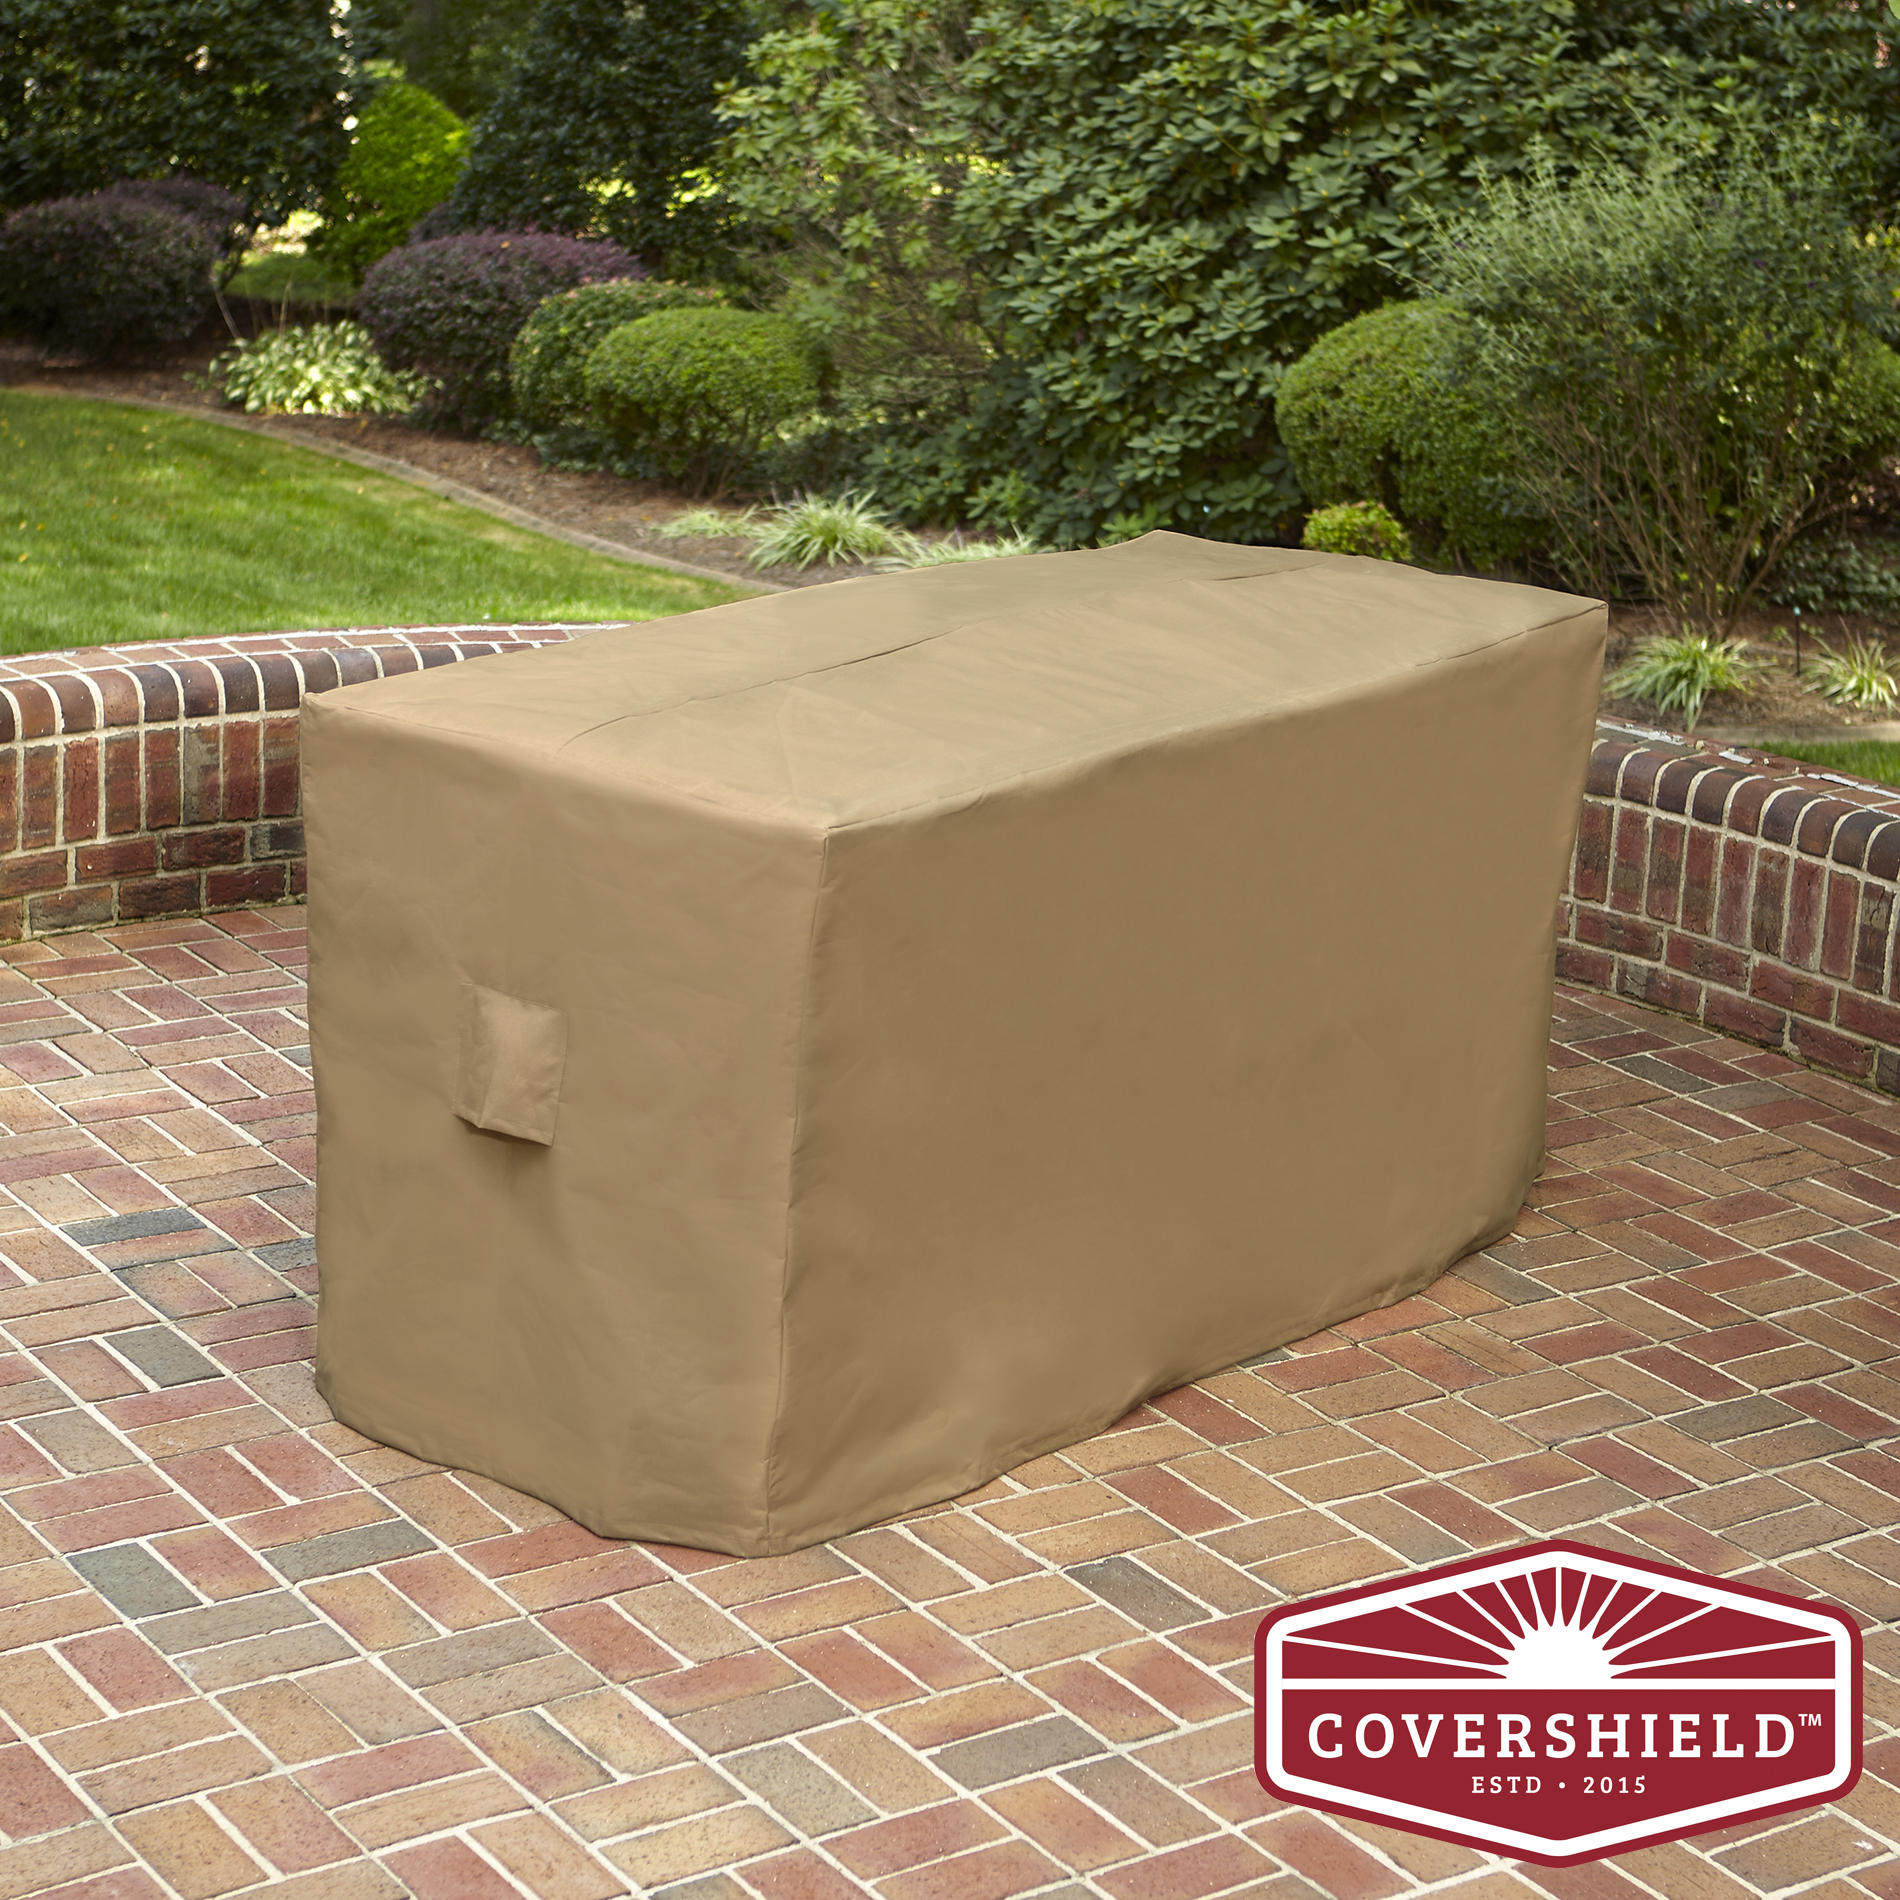 Covershield Bistro Cover- Deluxe - Outdoor Living Patio